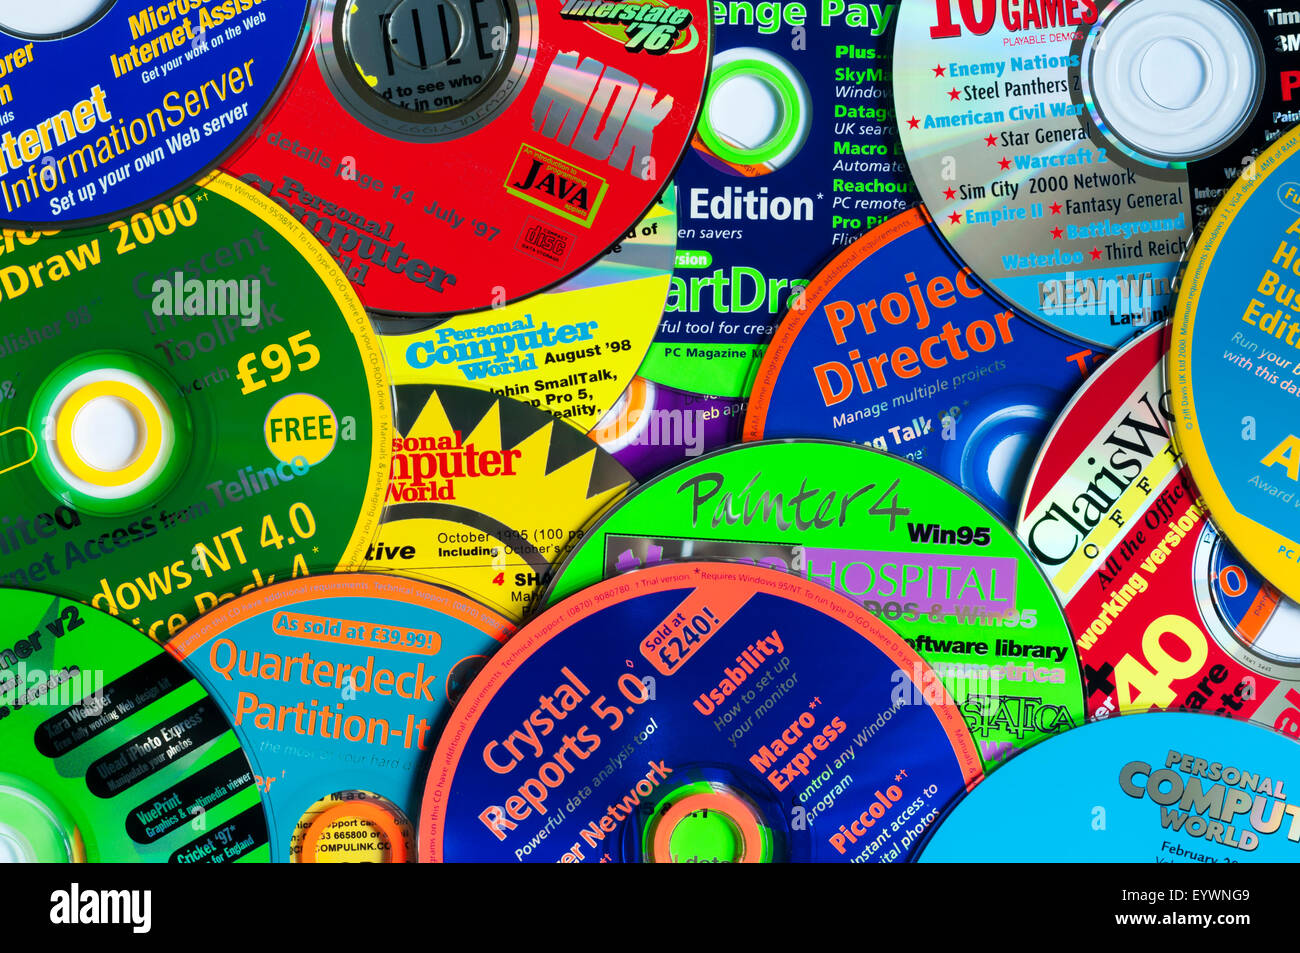 Computer programs given free with computing magazines in the 1990s. - Stock Image